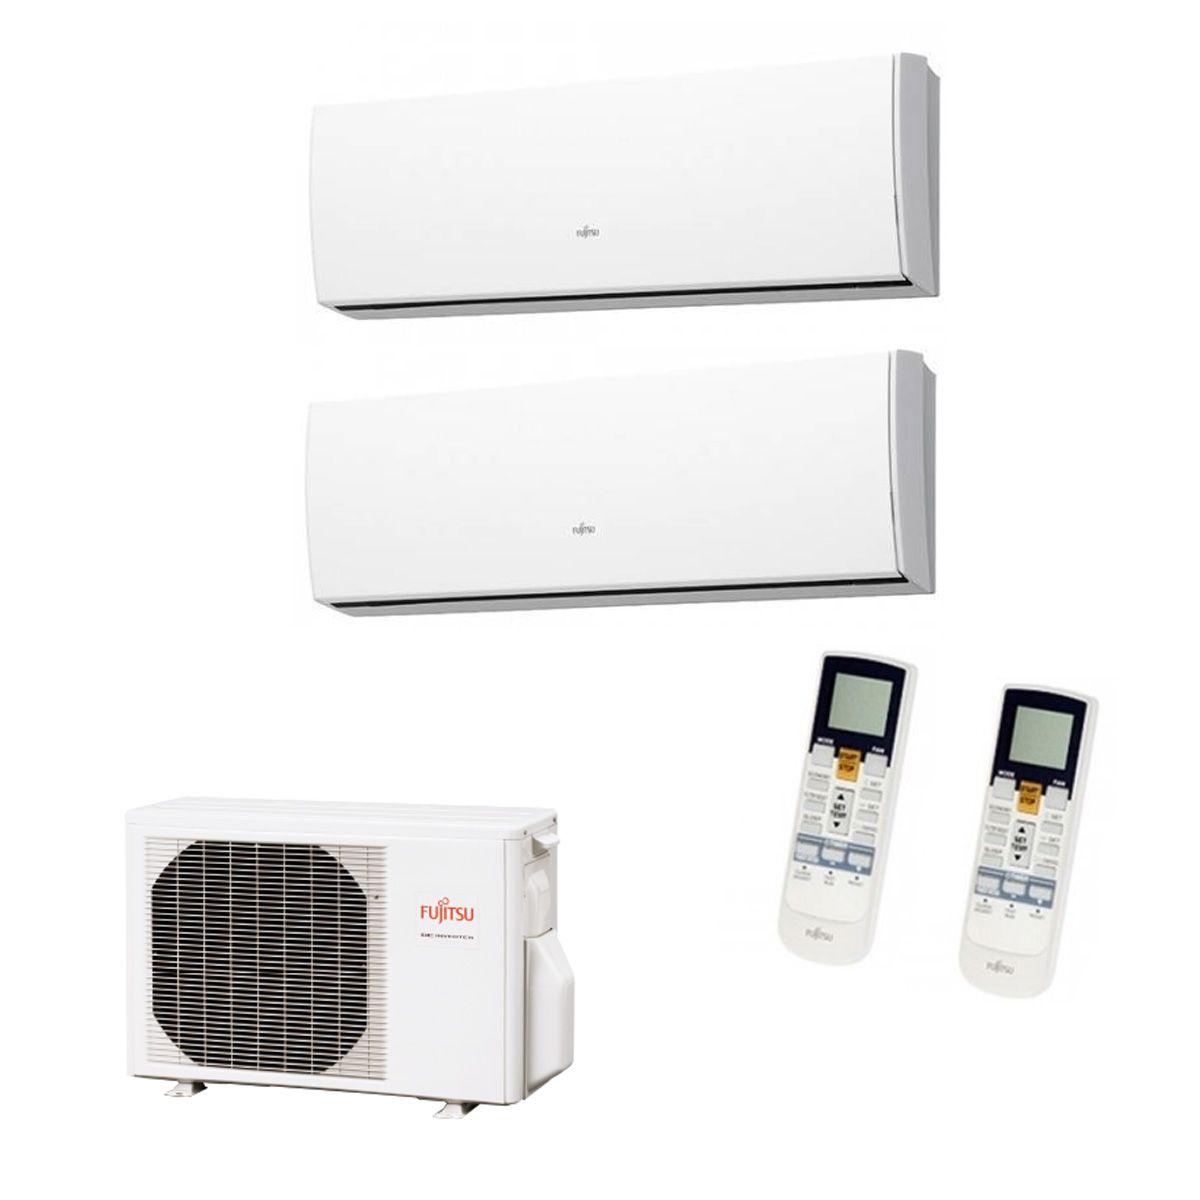 Fujitsu Air Conditioning Aoyg14lac2 Multi Split Inverter